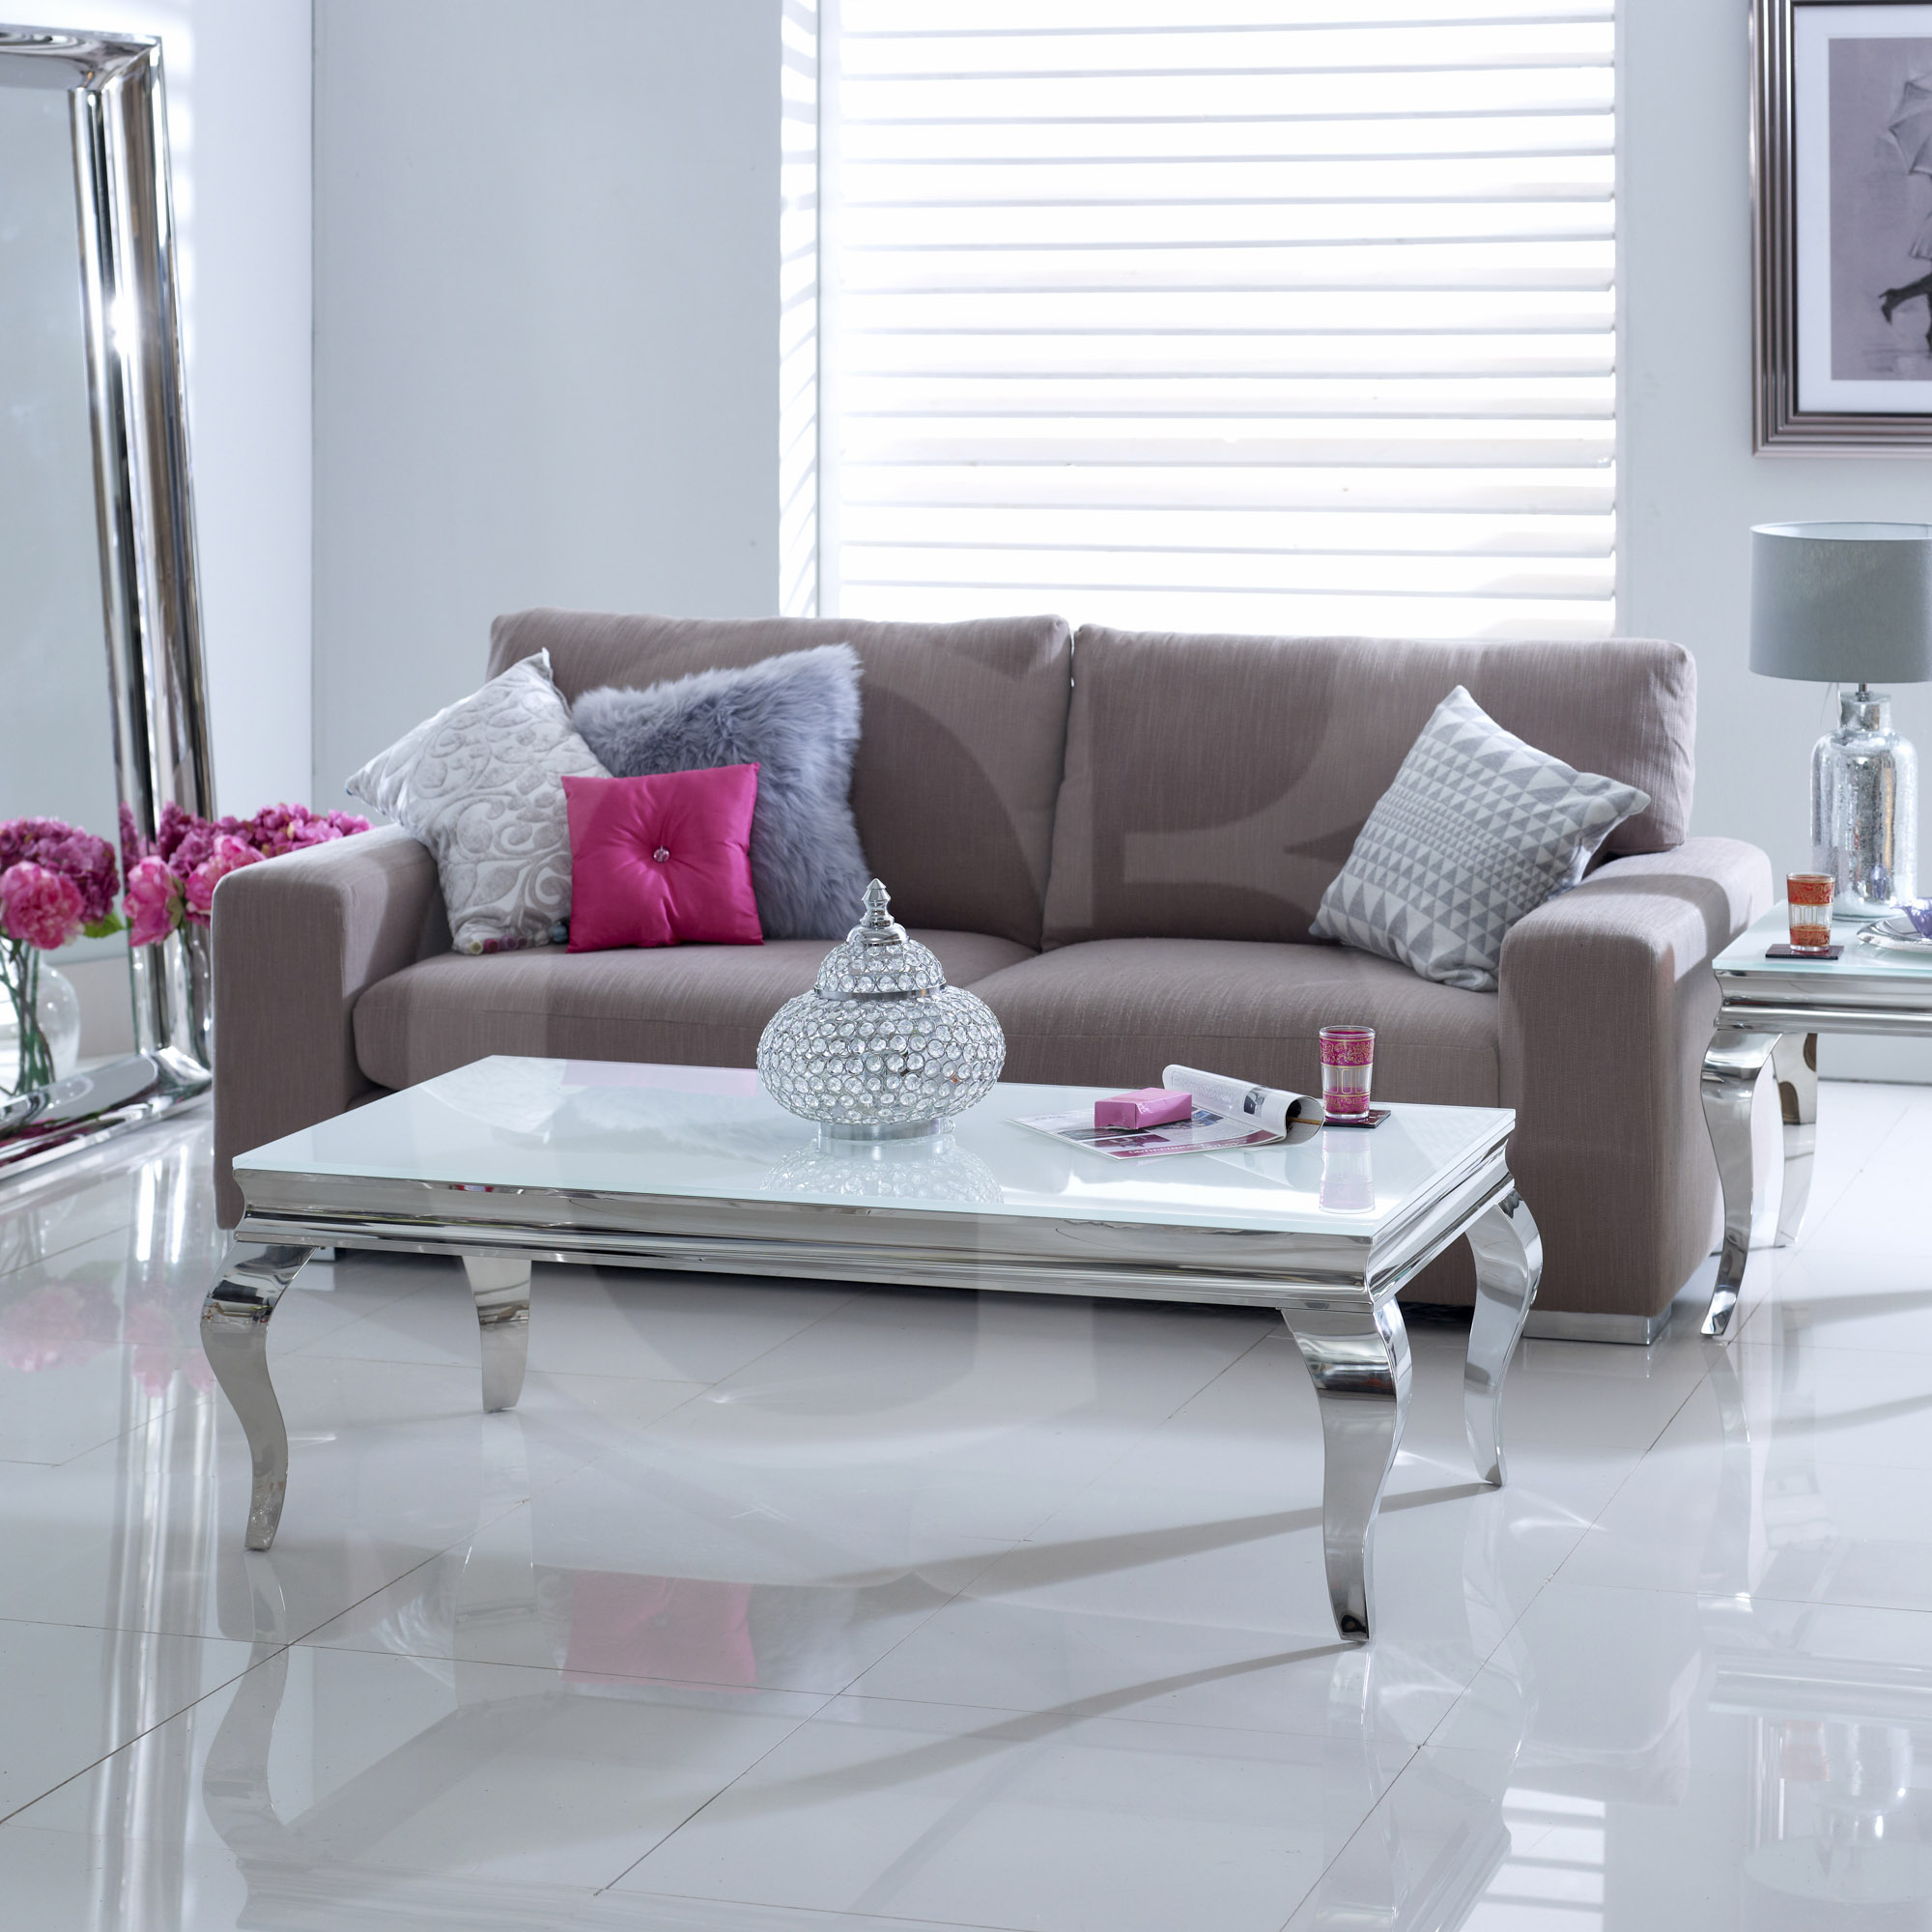 EGB100-W New Juliette Stainless Steel Chrome Coffee Table